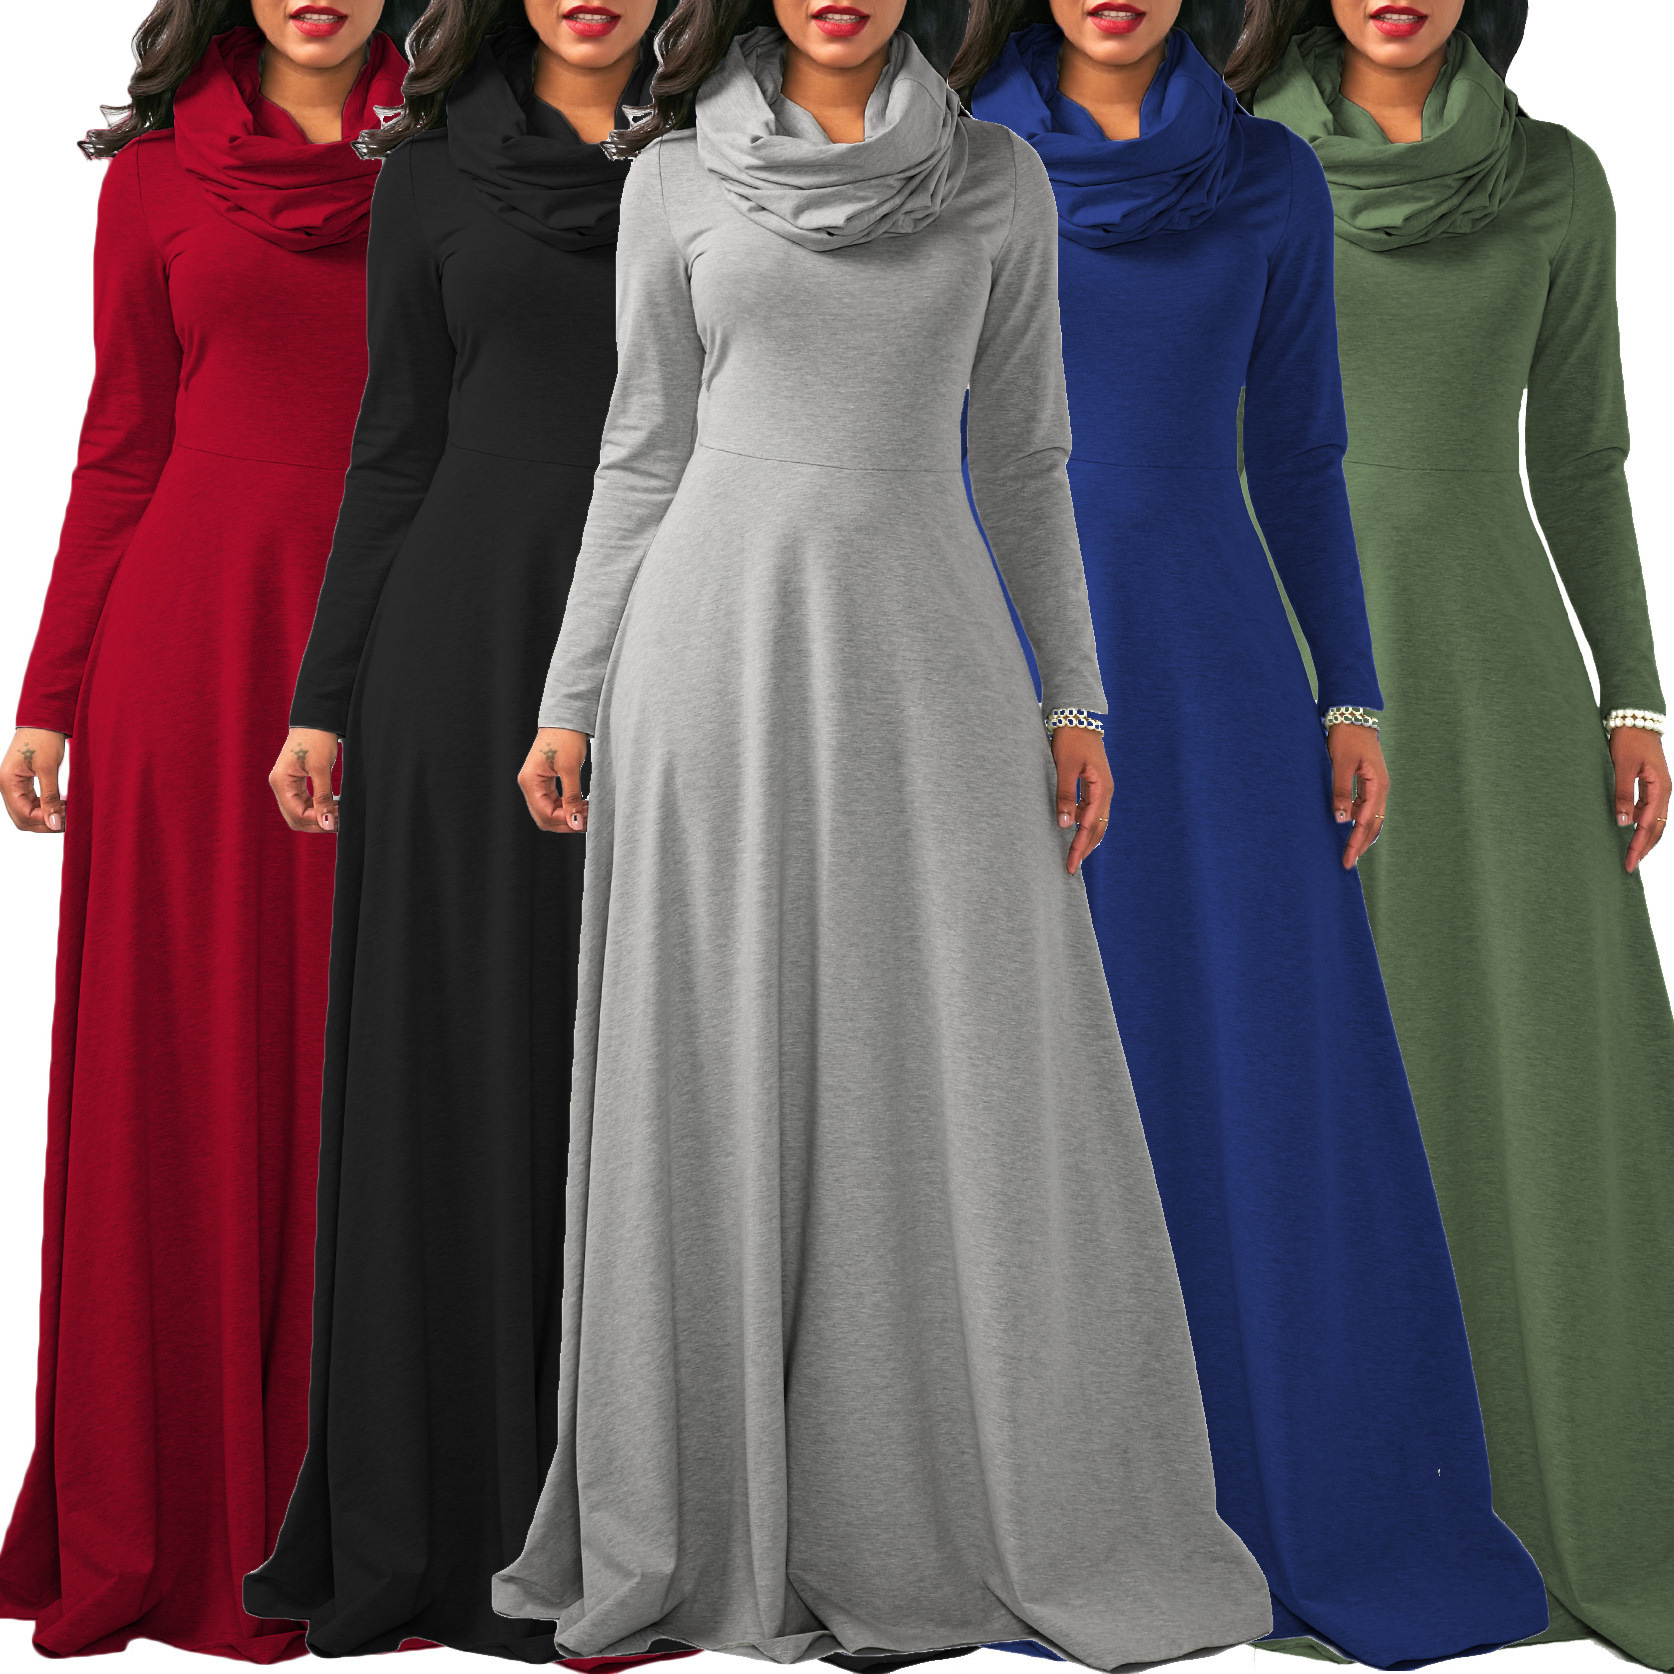 2018 chun xia selling new turtle neck long sleeve side zippers dresses a undertakes